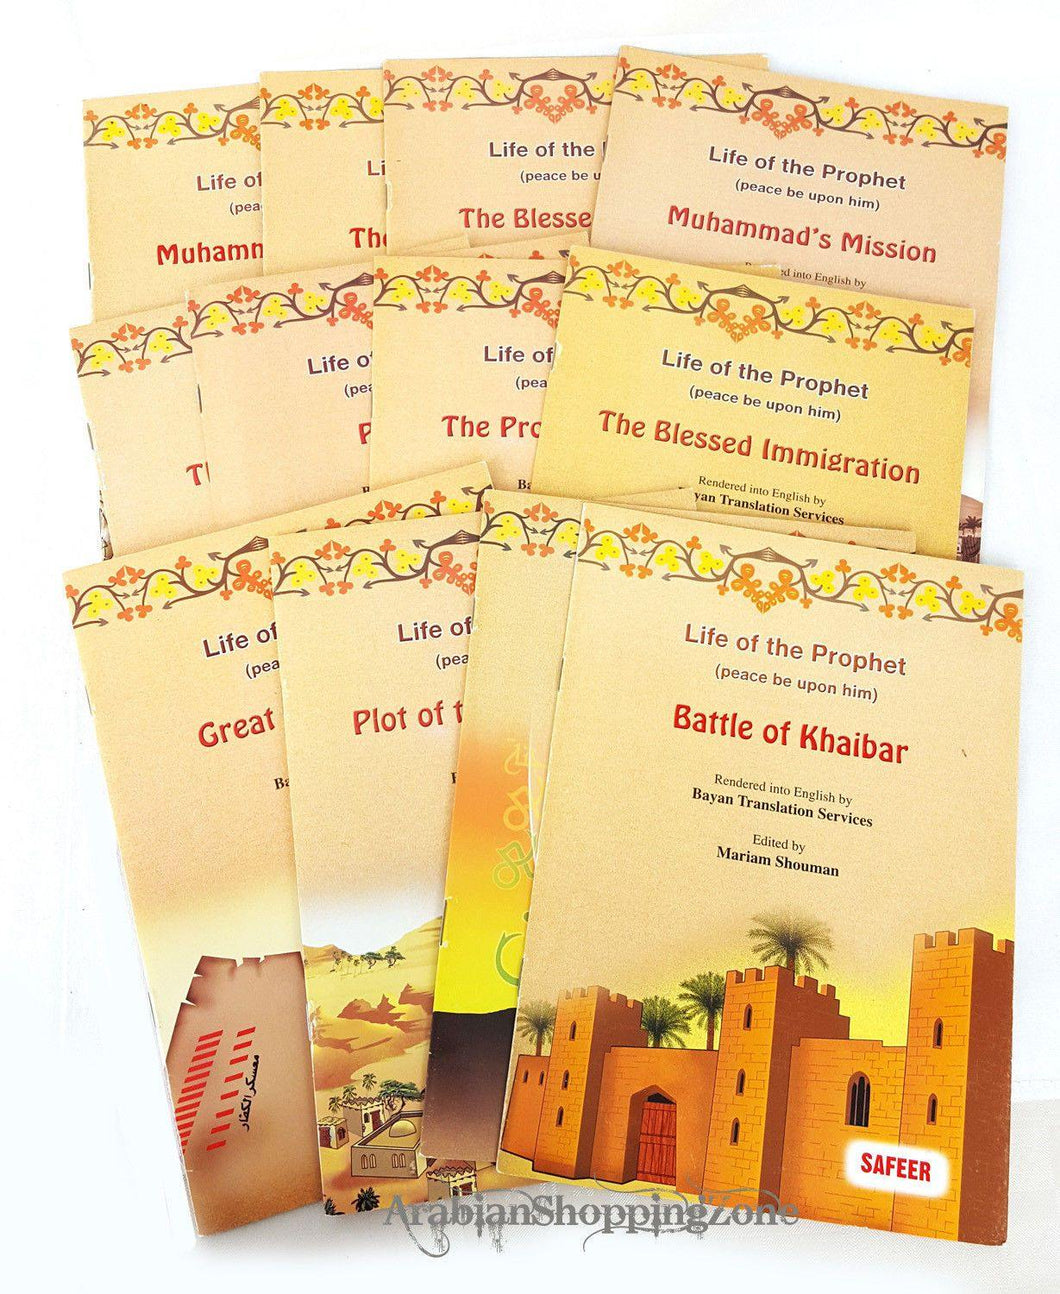 Life of The Prophet Peace be upon him - Series 12 books (English only) - Arabian Shopping Zone